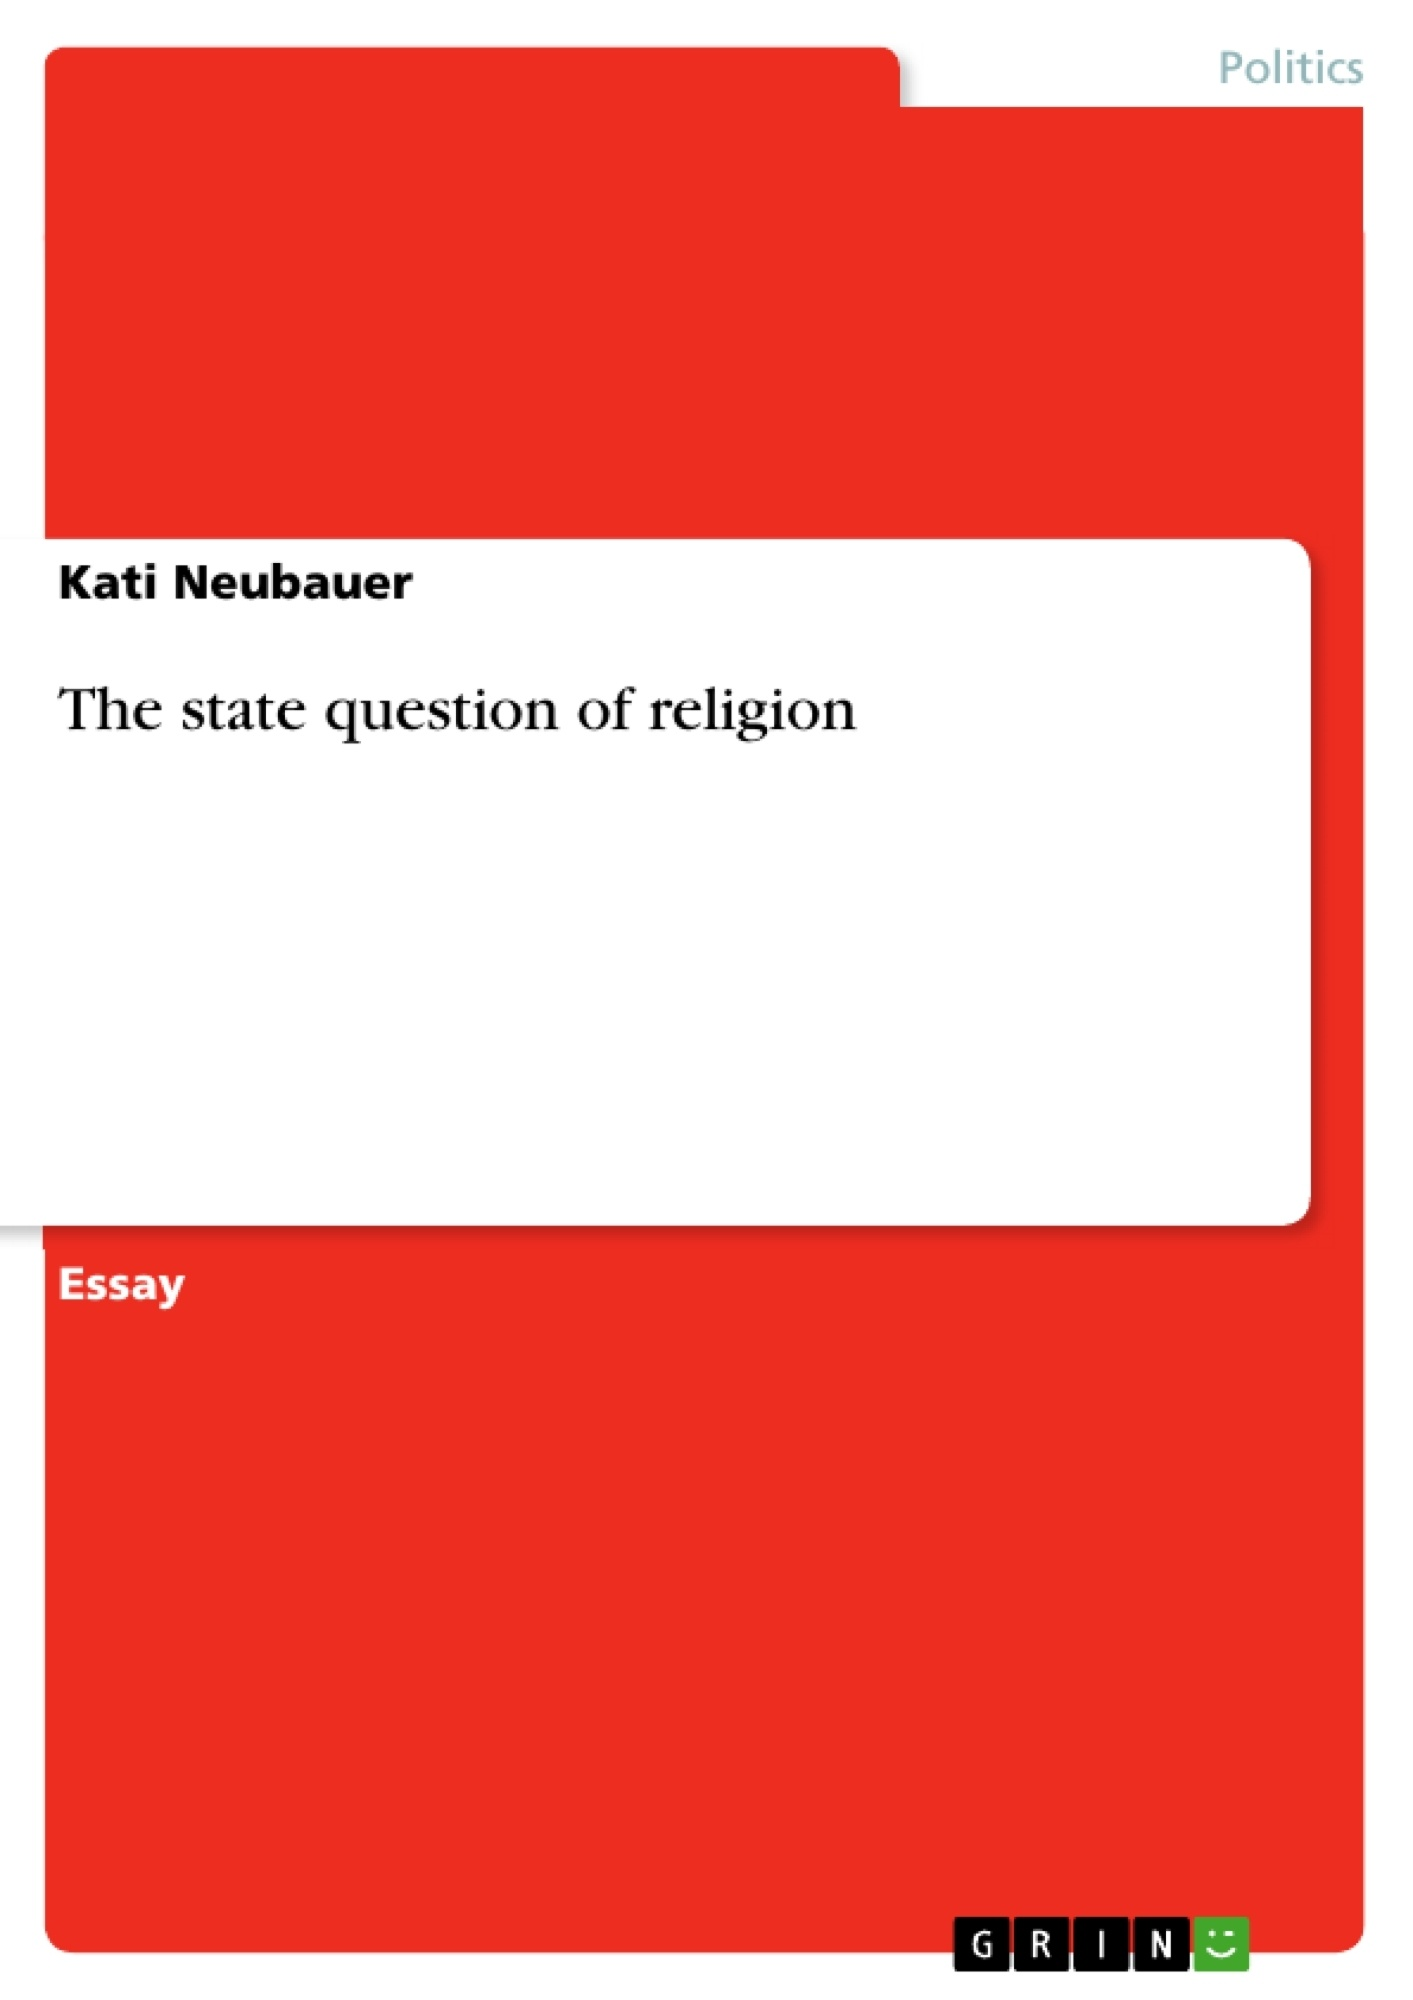 Title: The state question of religion